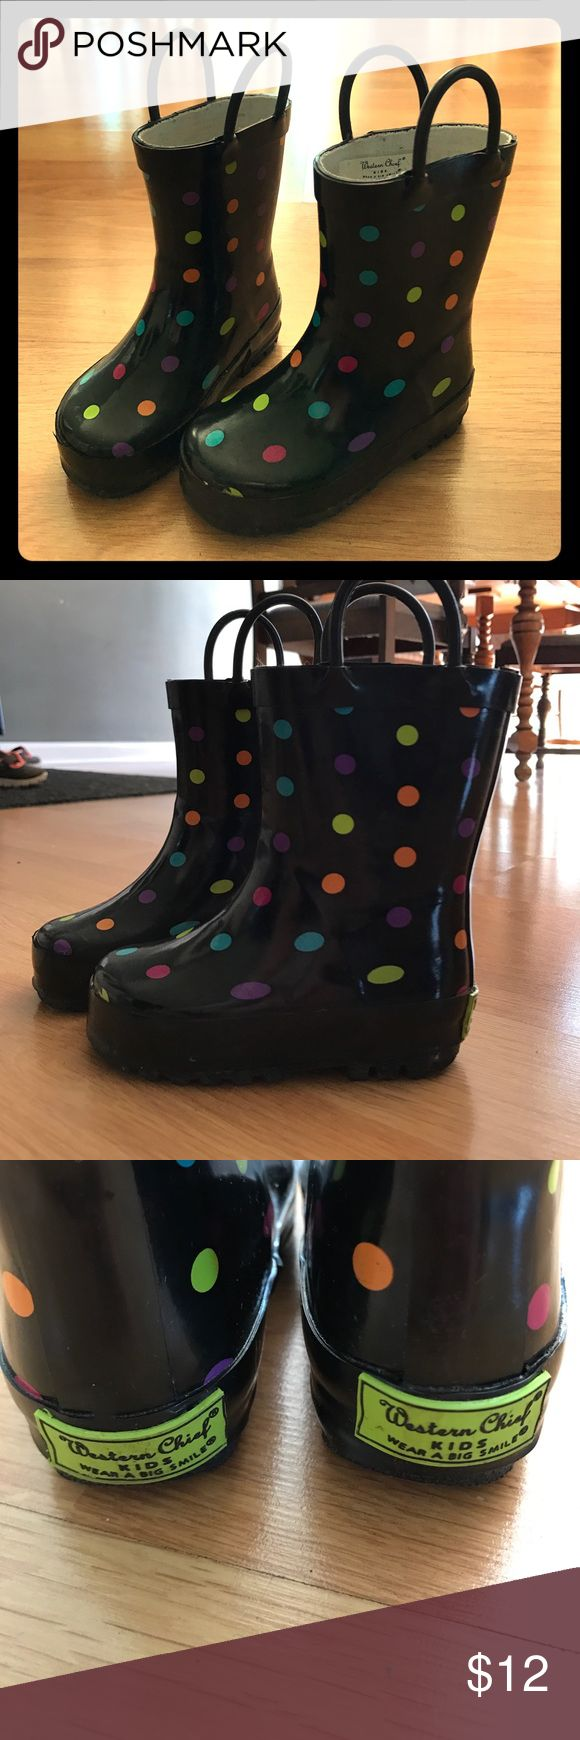 Western Chief Kids size 5/6 toddler rain boots! Size 5/6. Excellent used condition, worn about 3 times. Has multi color polka dots. These rain boots are perfect your little one! Easy to pull on too! Western Chief Brand size 5/6 toddler. Western Chief Shoes Rain & Snow Boots